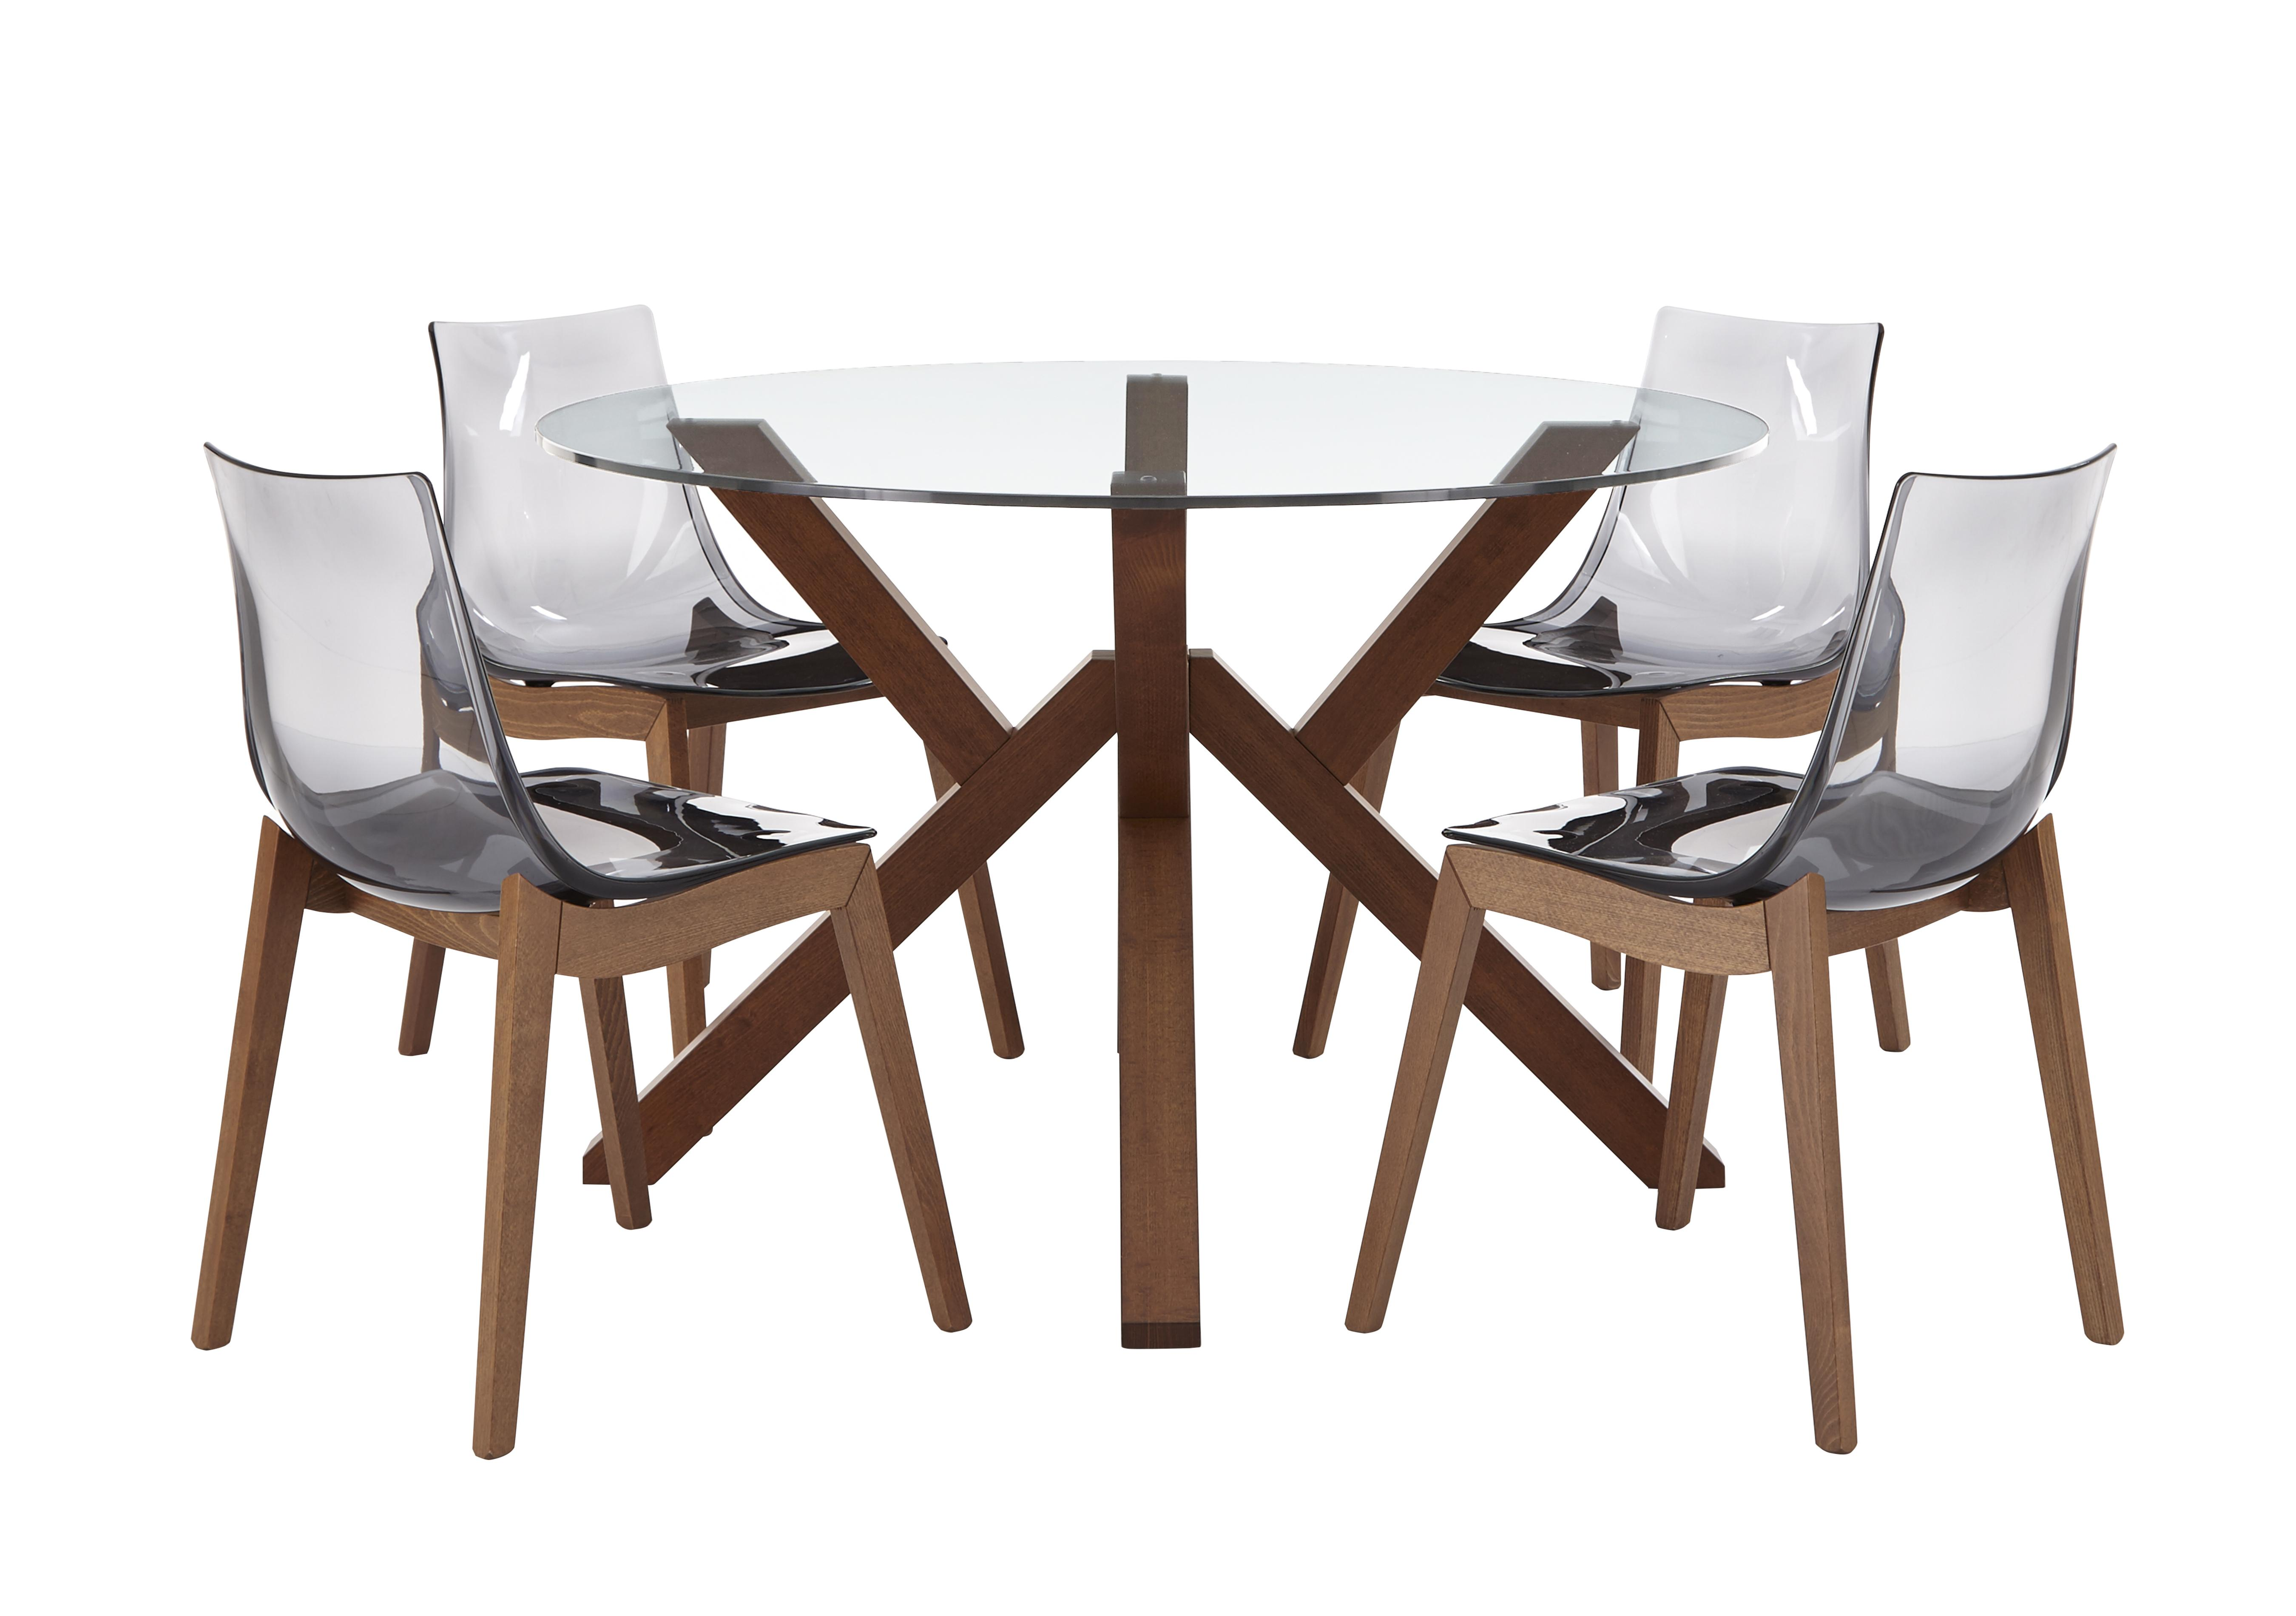 Calligaris Mikado Dining Table and 4 Chairs  sc 1 st  Furniture Village & Mikado Dining Table and 4 Chairs - Calligaris - Furniture Village